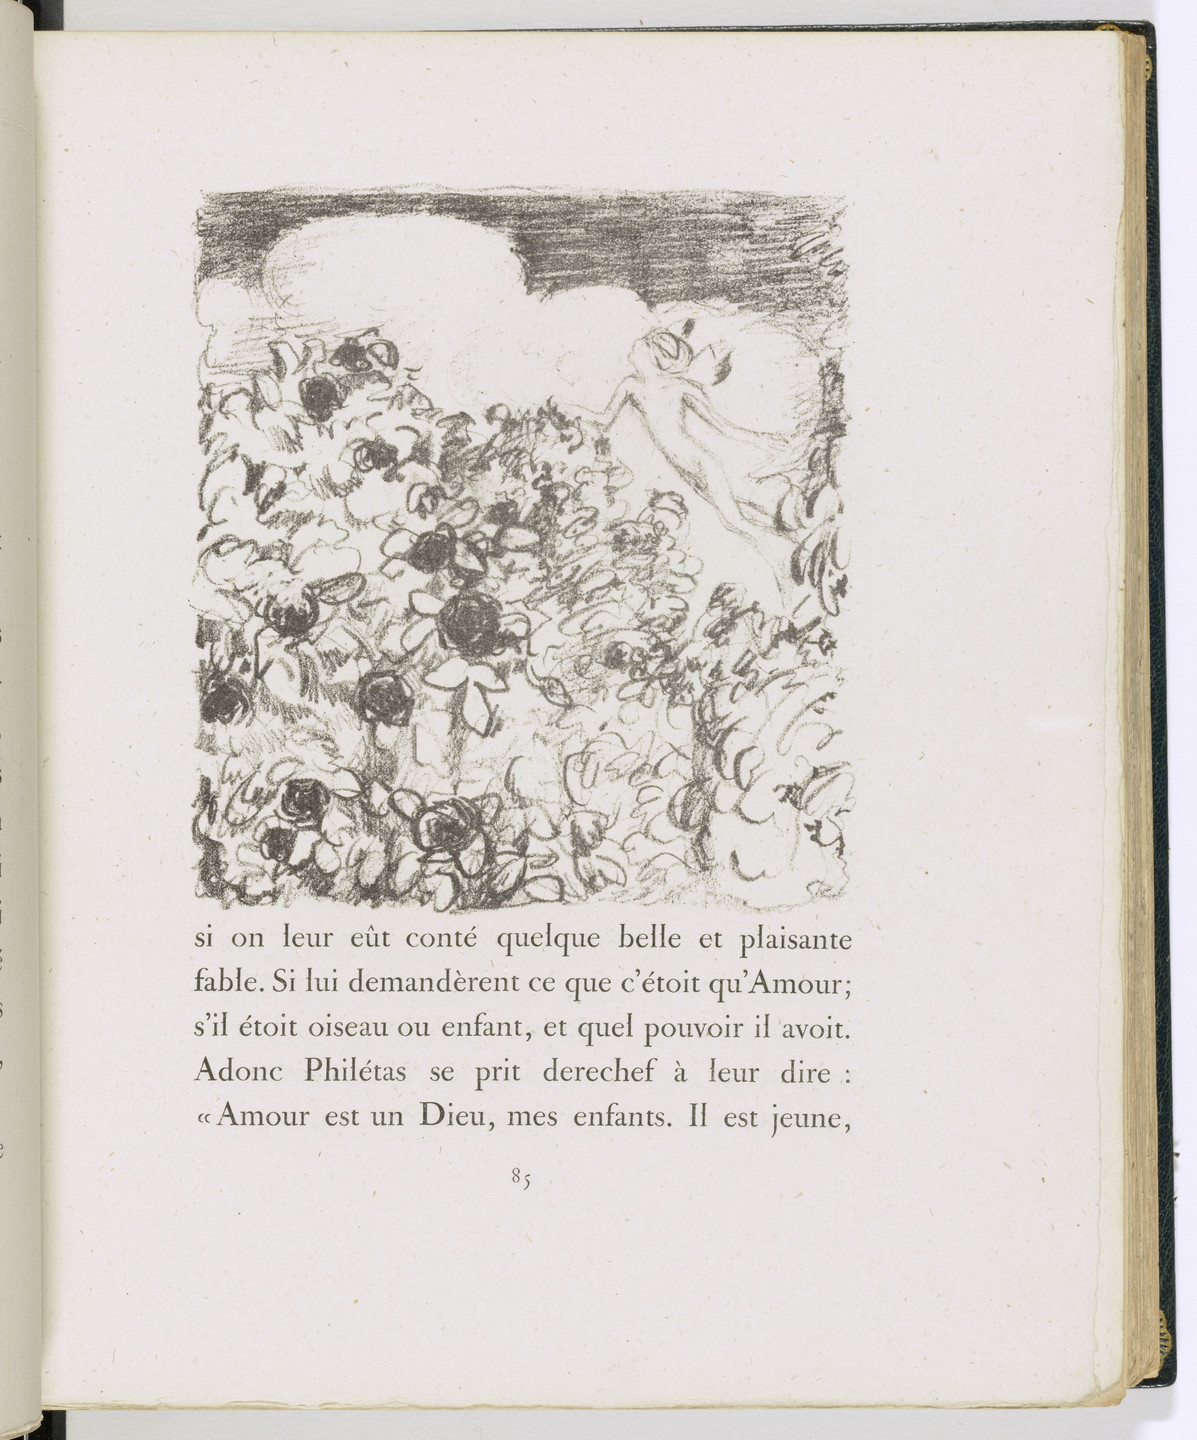 Pierre Bonnard. In-text plate (page 85) from Daphnis et Chloé. 1902